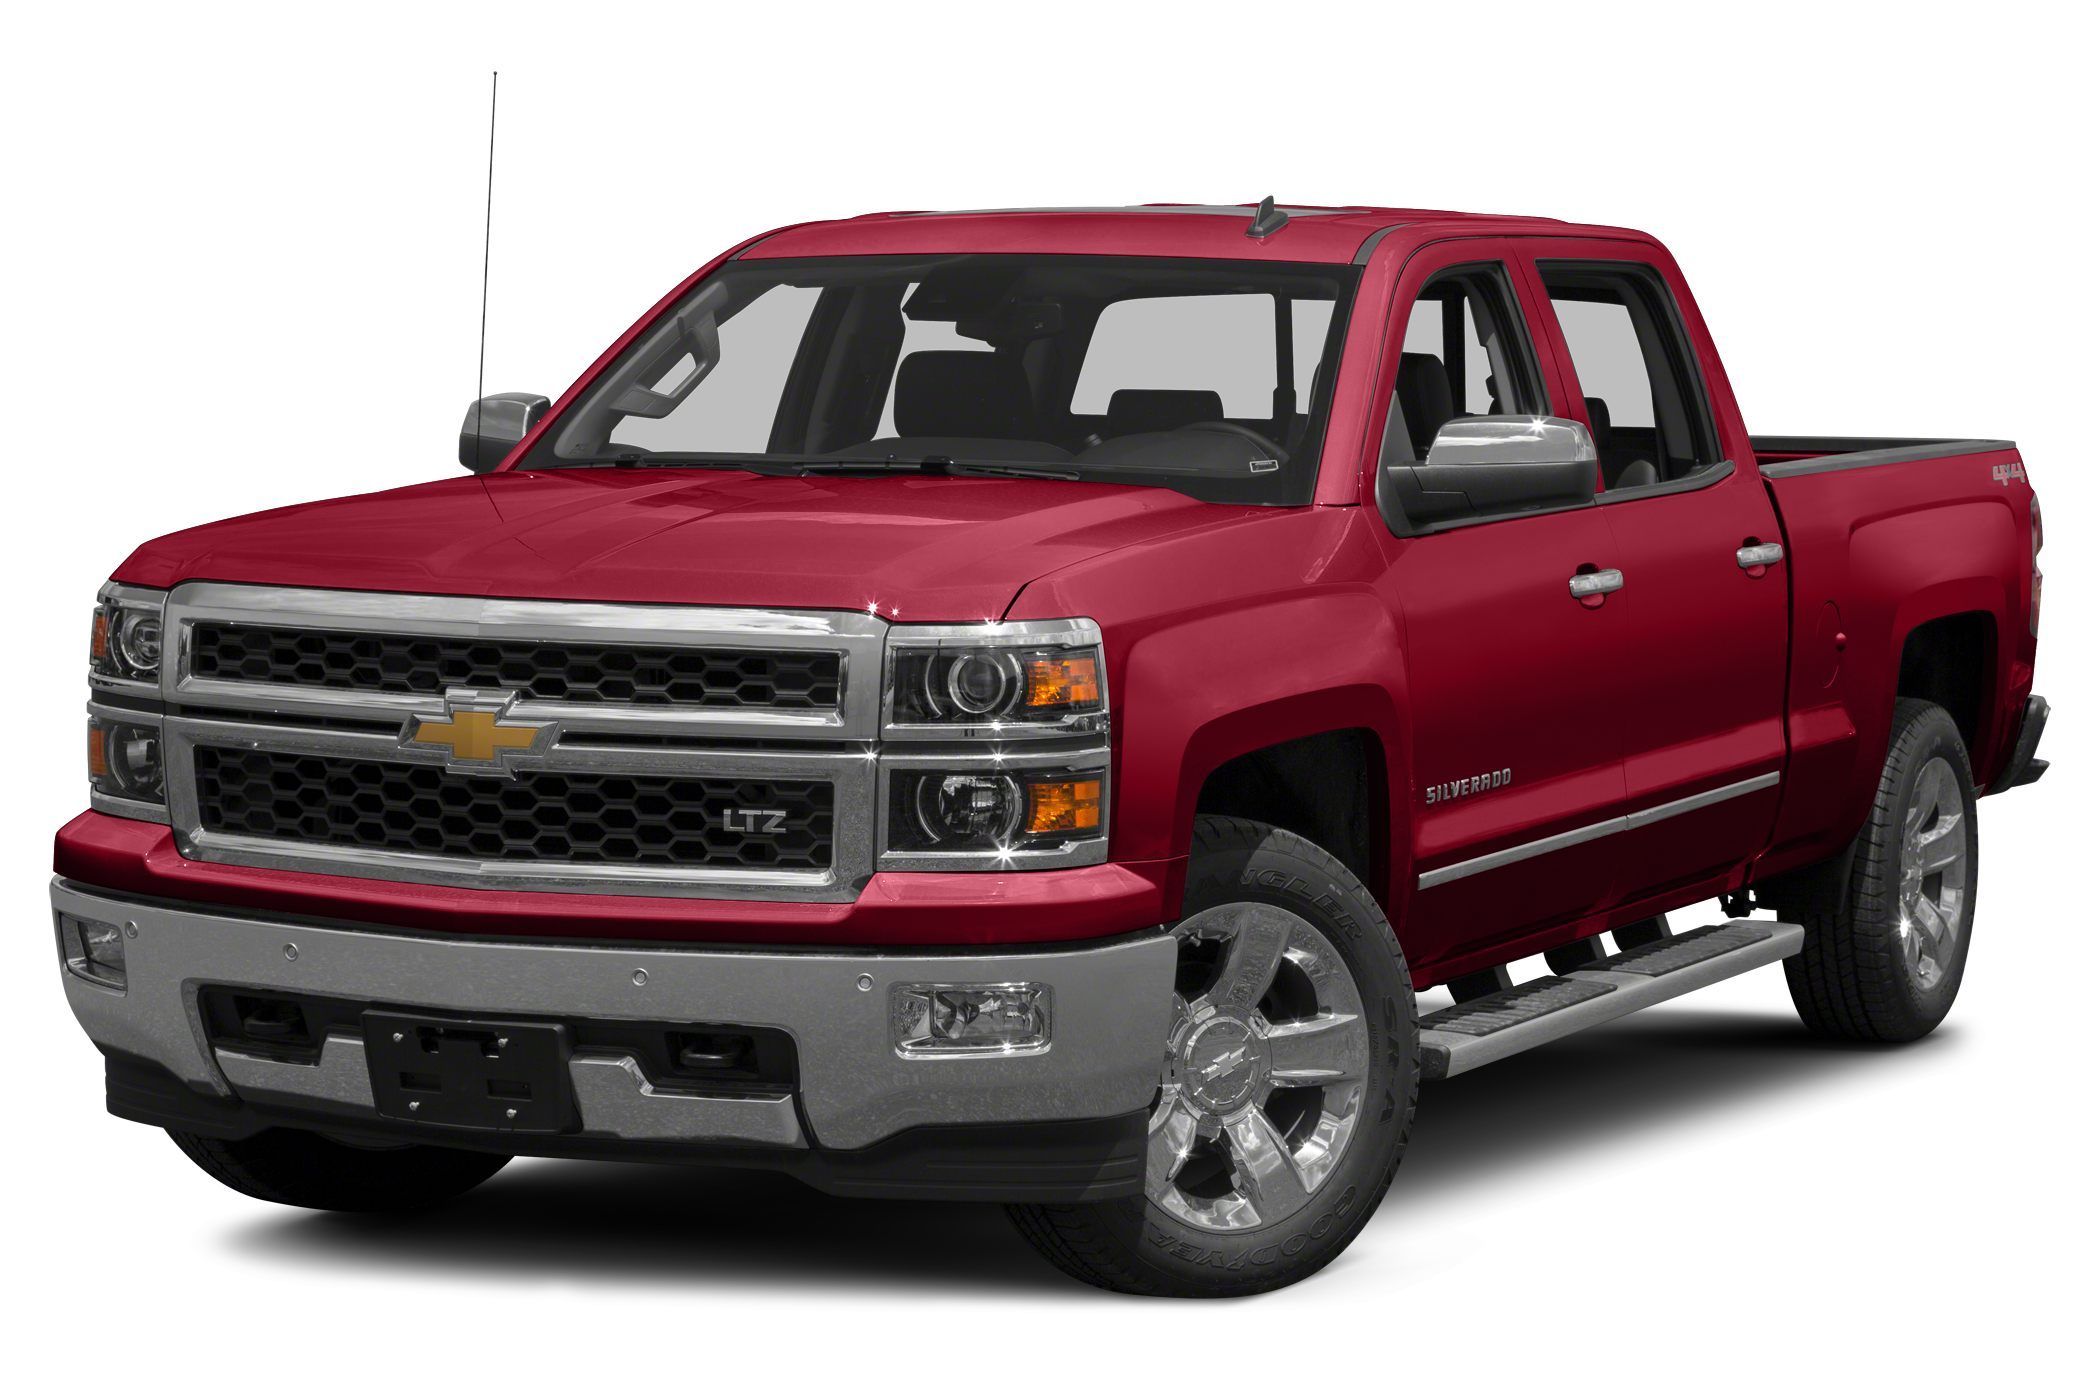 2014 Chevrolet Silverado 1500 LTZ Really  really nice LTZ crew cap pickup white with gray leathe